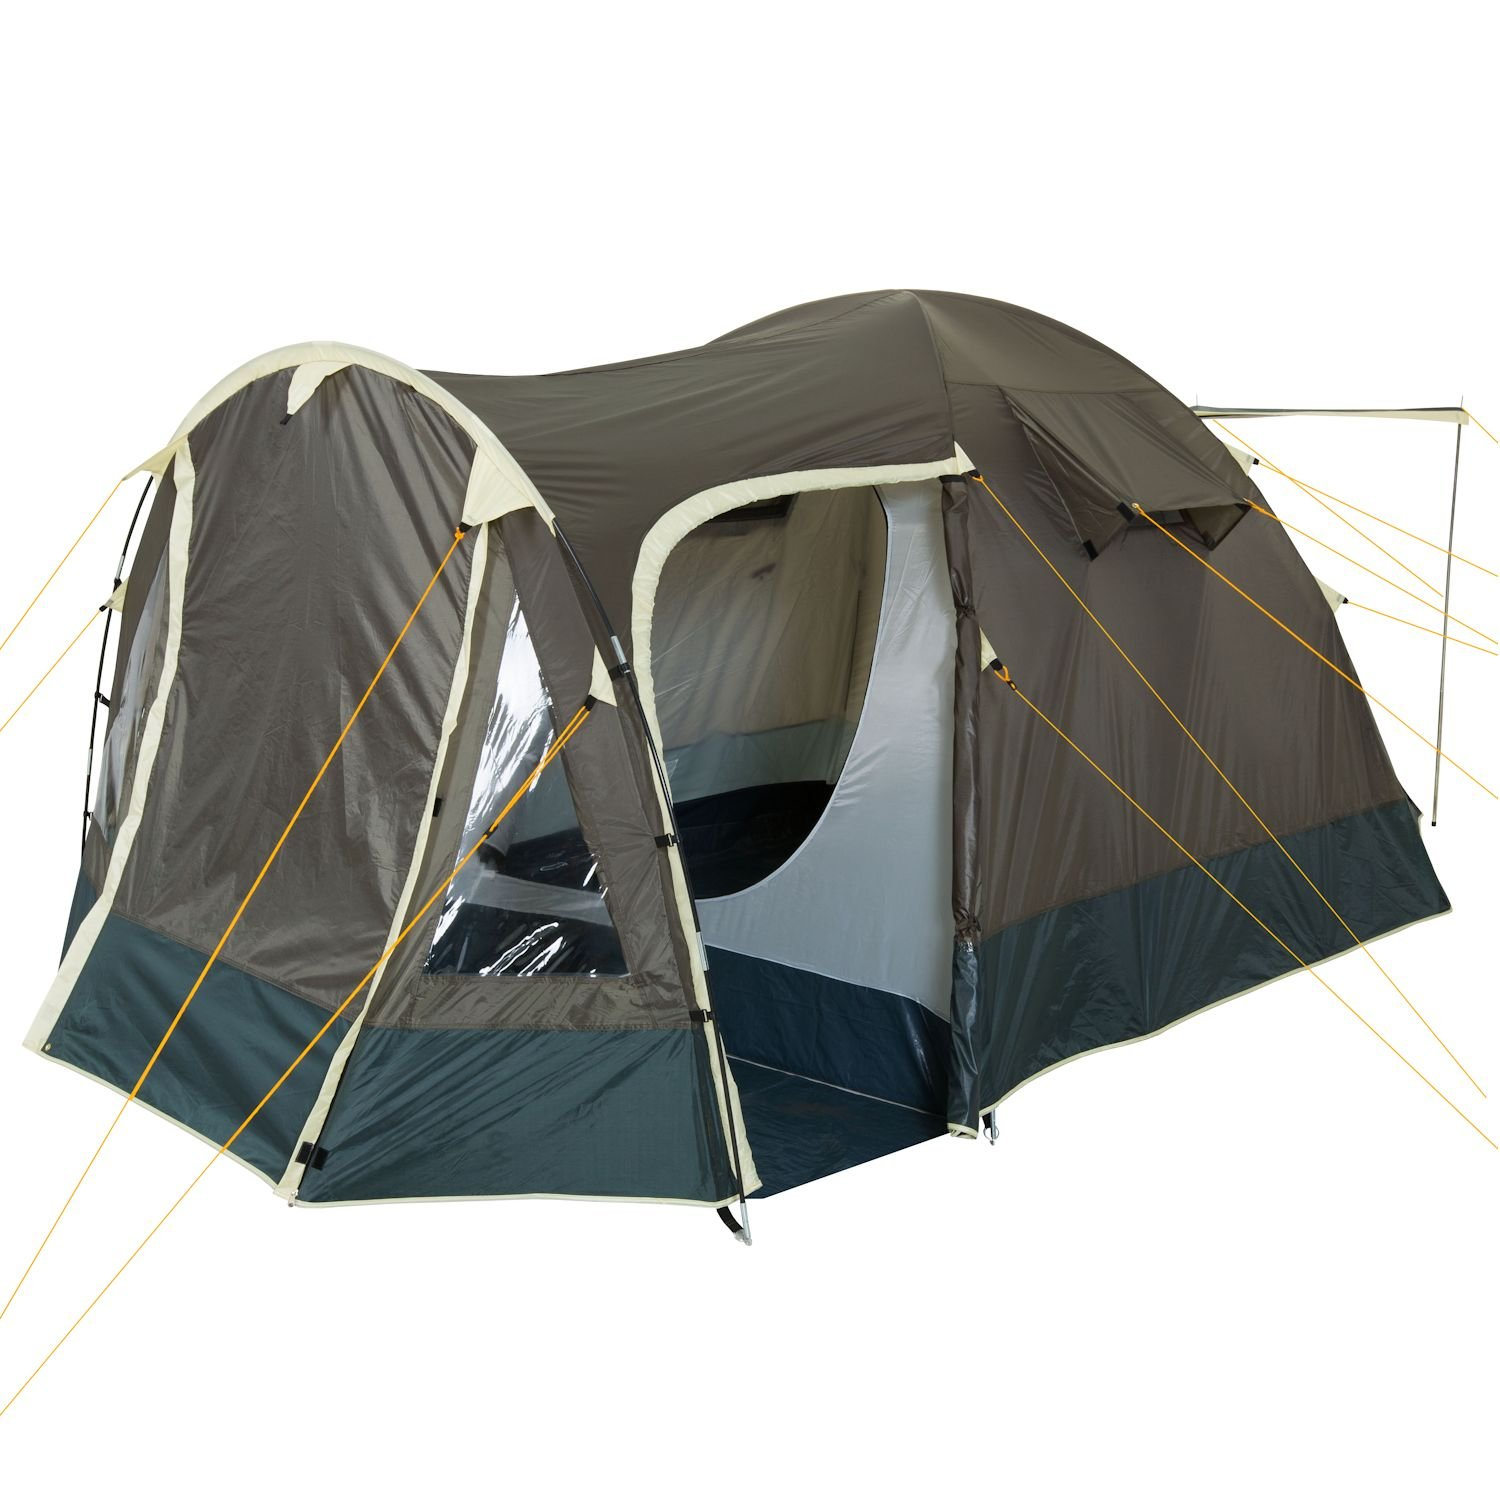 C&Feuer - Igloo/Dome-Tent with Porch 3-4 Persons khaki / dark green Amazon.co.uk Sports u0026 Outdoors  sc 1 st  Amazon UK : dark tent - memphite.com